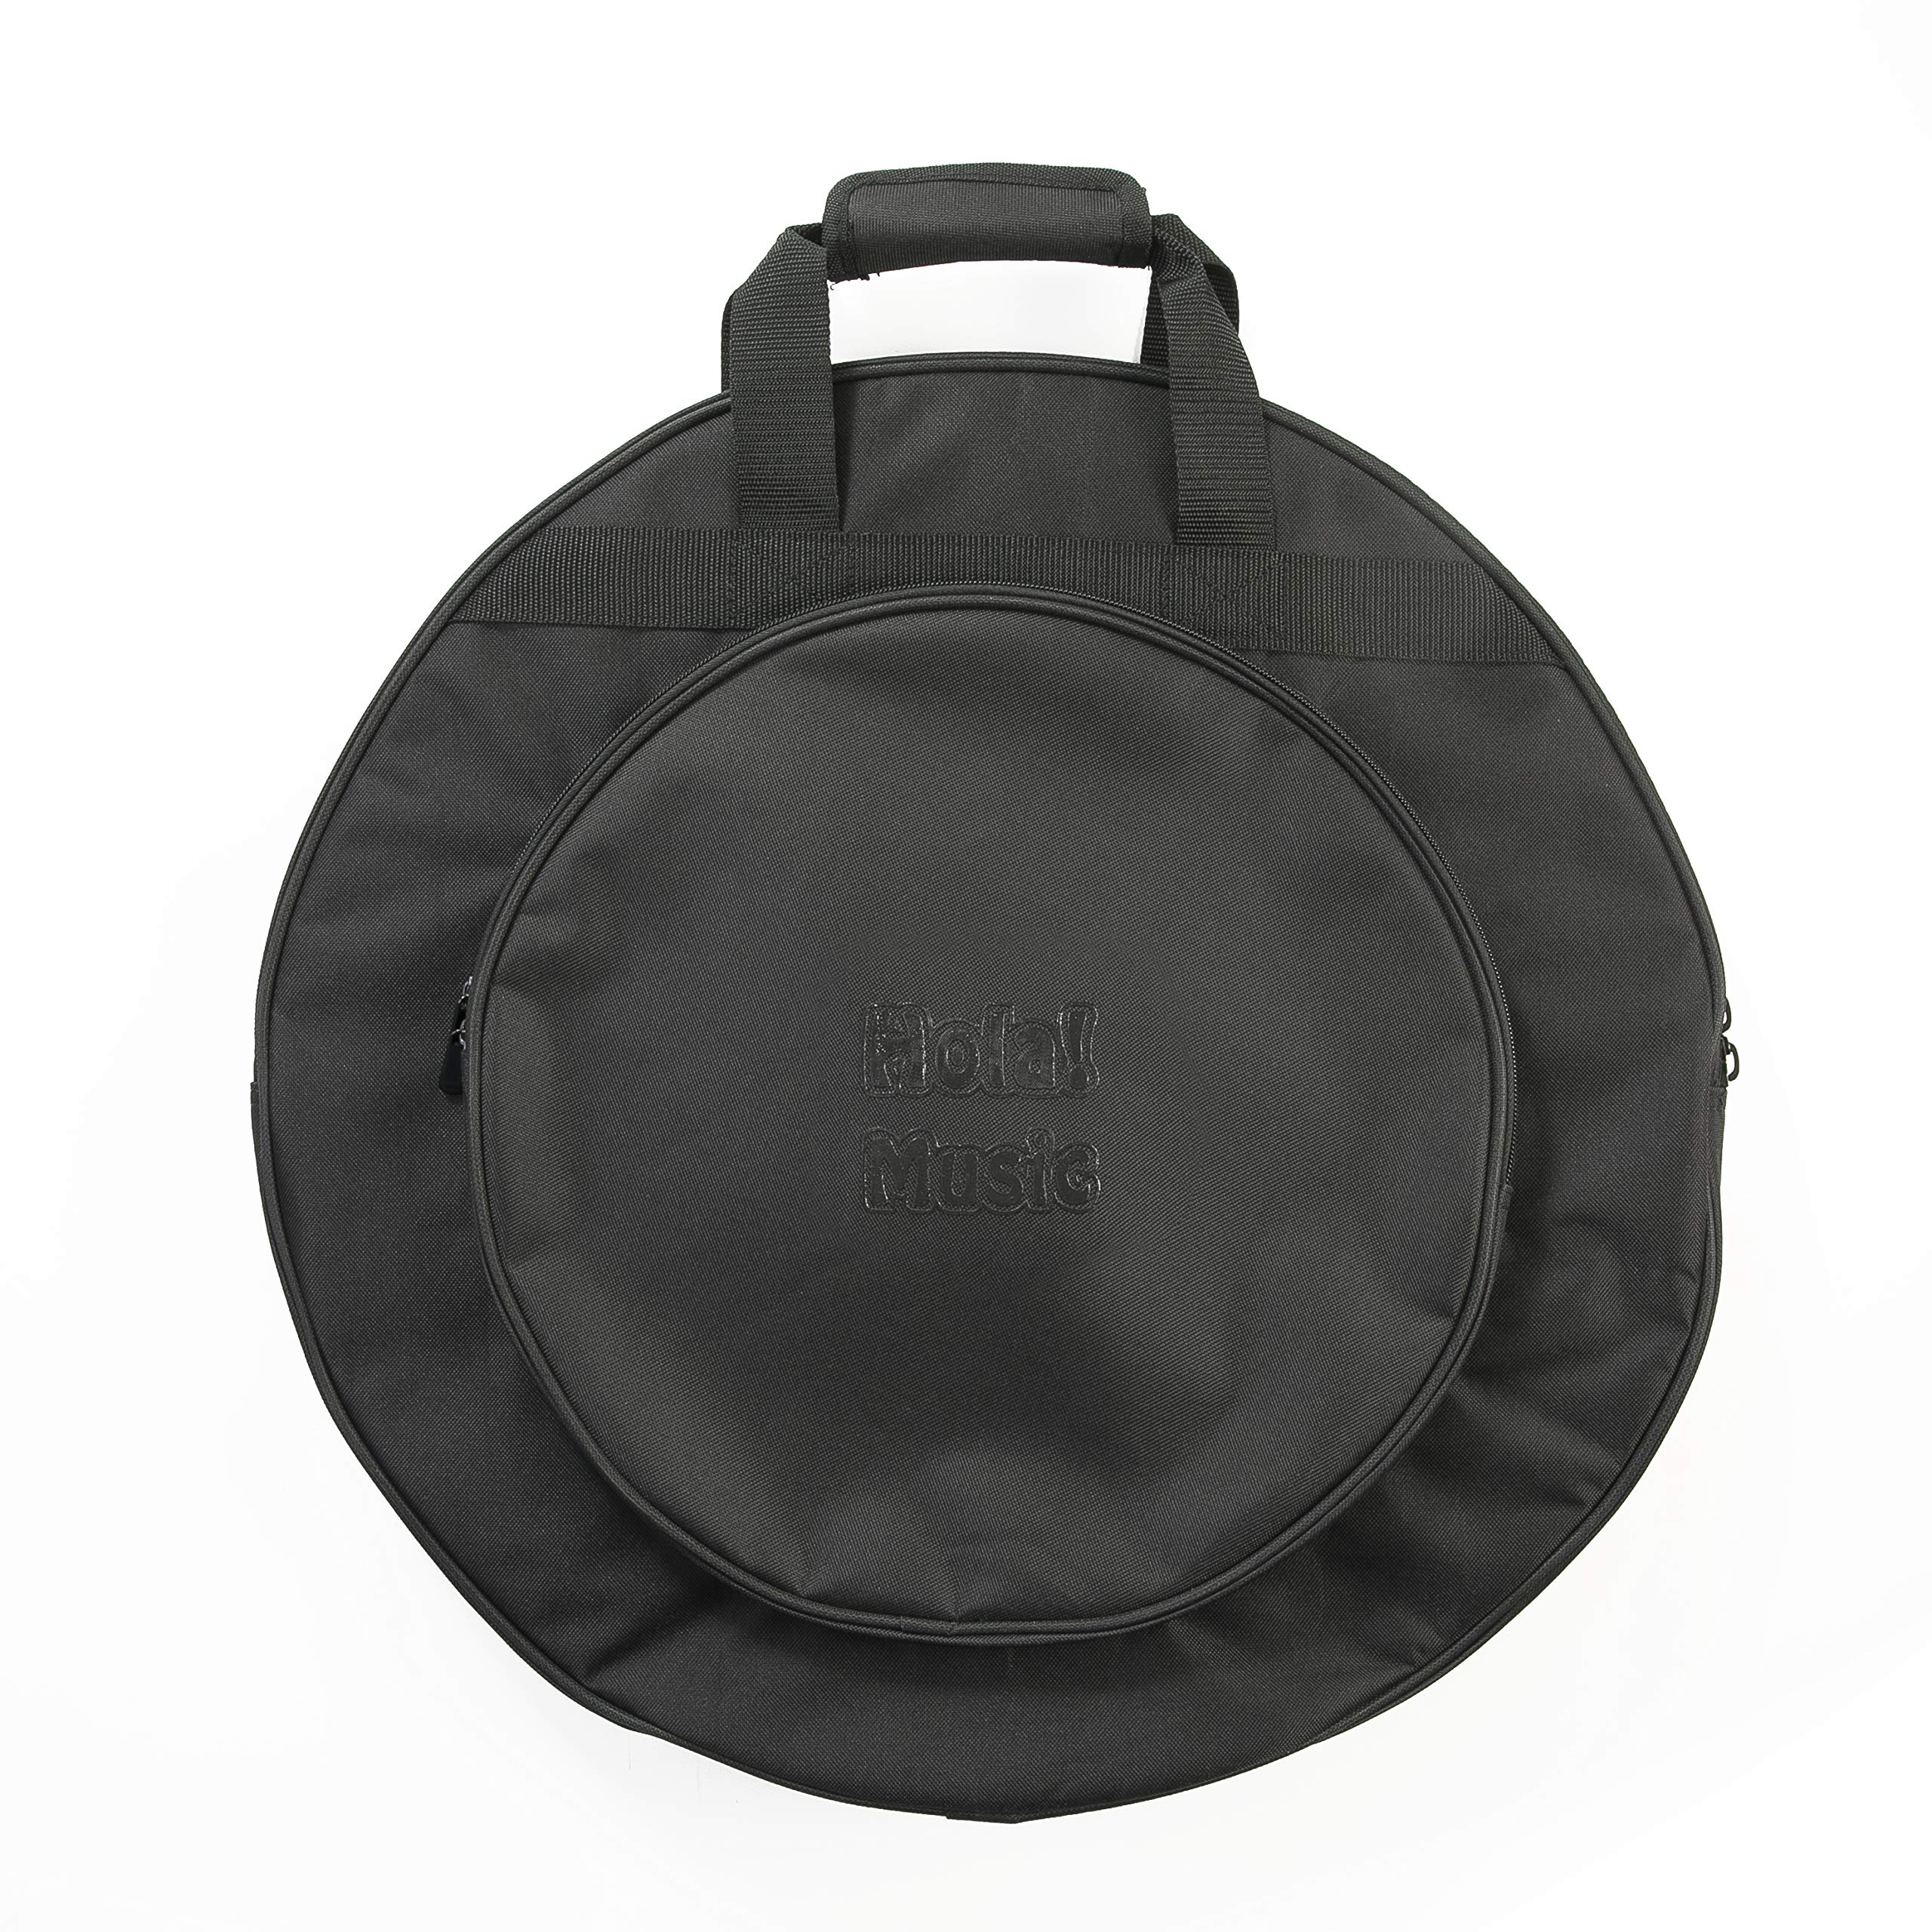 22'' Cymbal Bag by Hola! Music, 3 Inner Compartments, 17'' Pocket and Backpack Straps